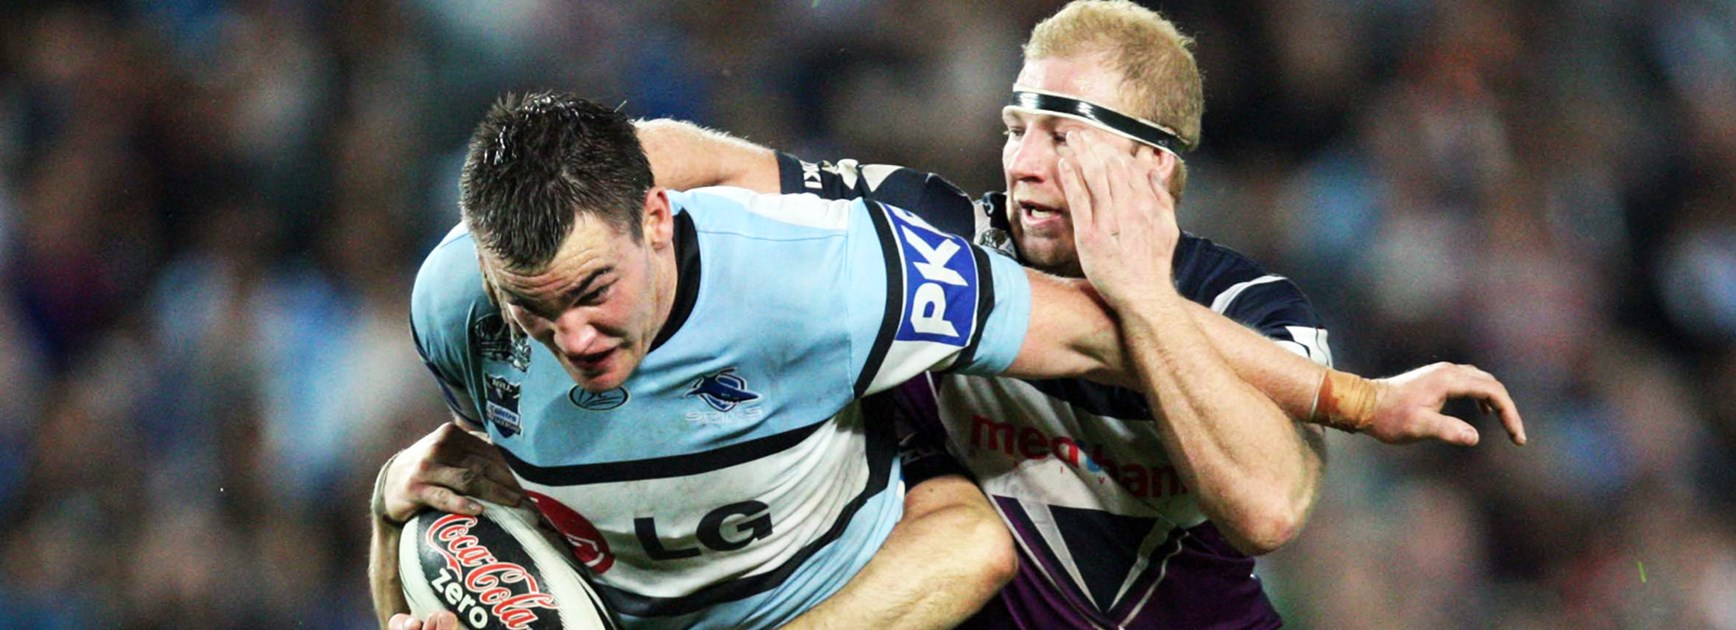 Luke Douglas in action for Cronulla in the game that still haunts him.